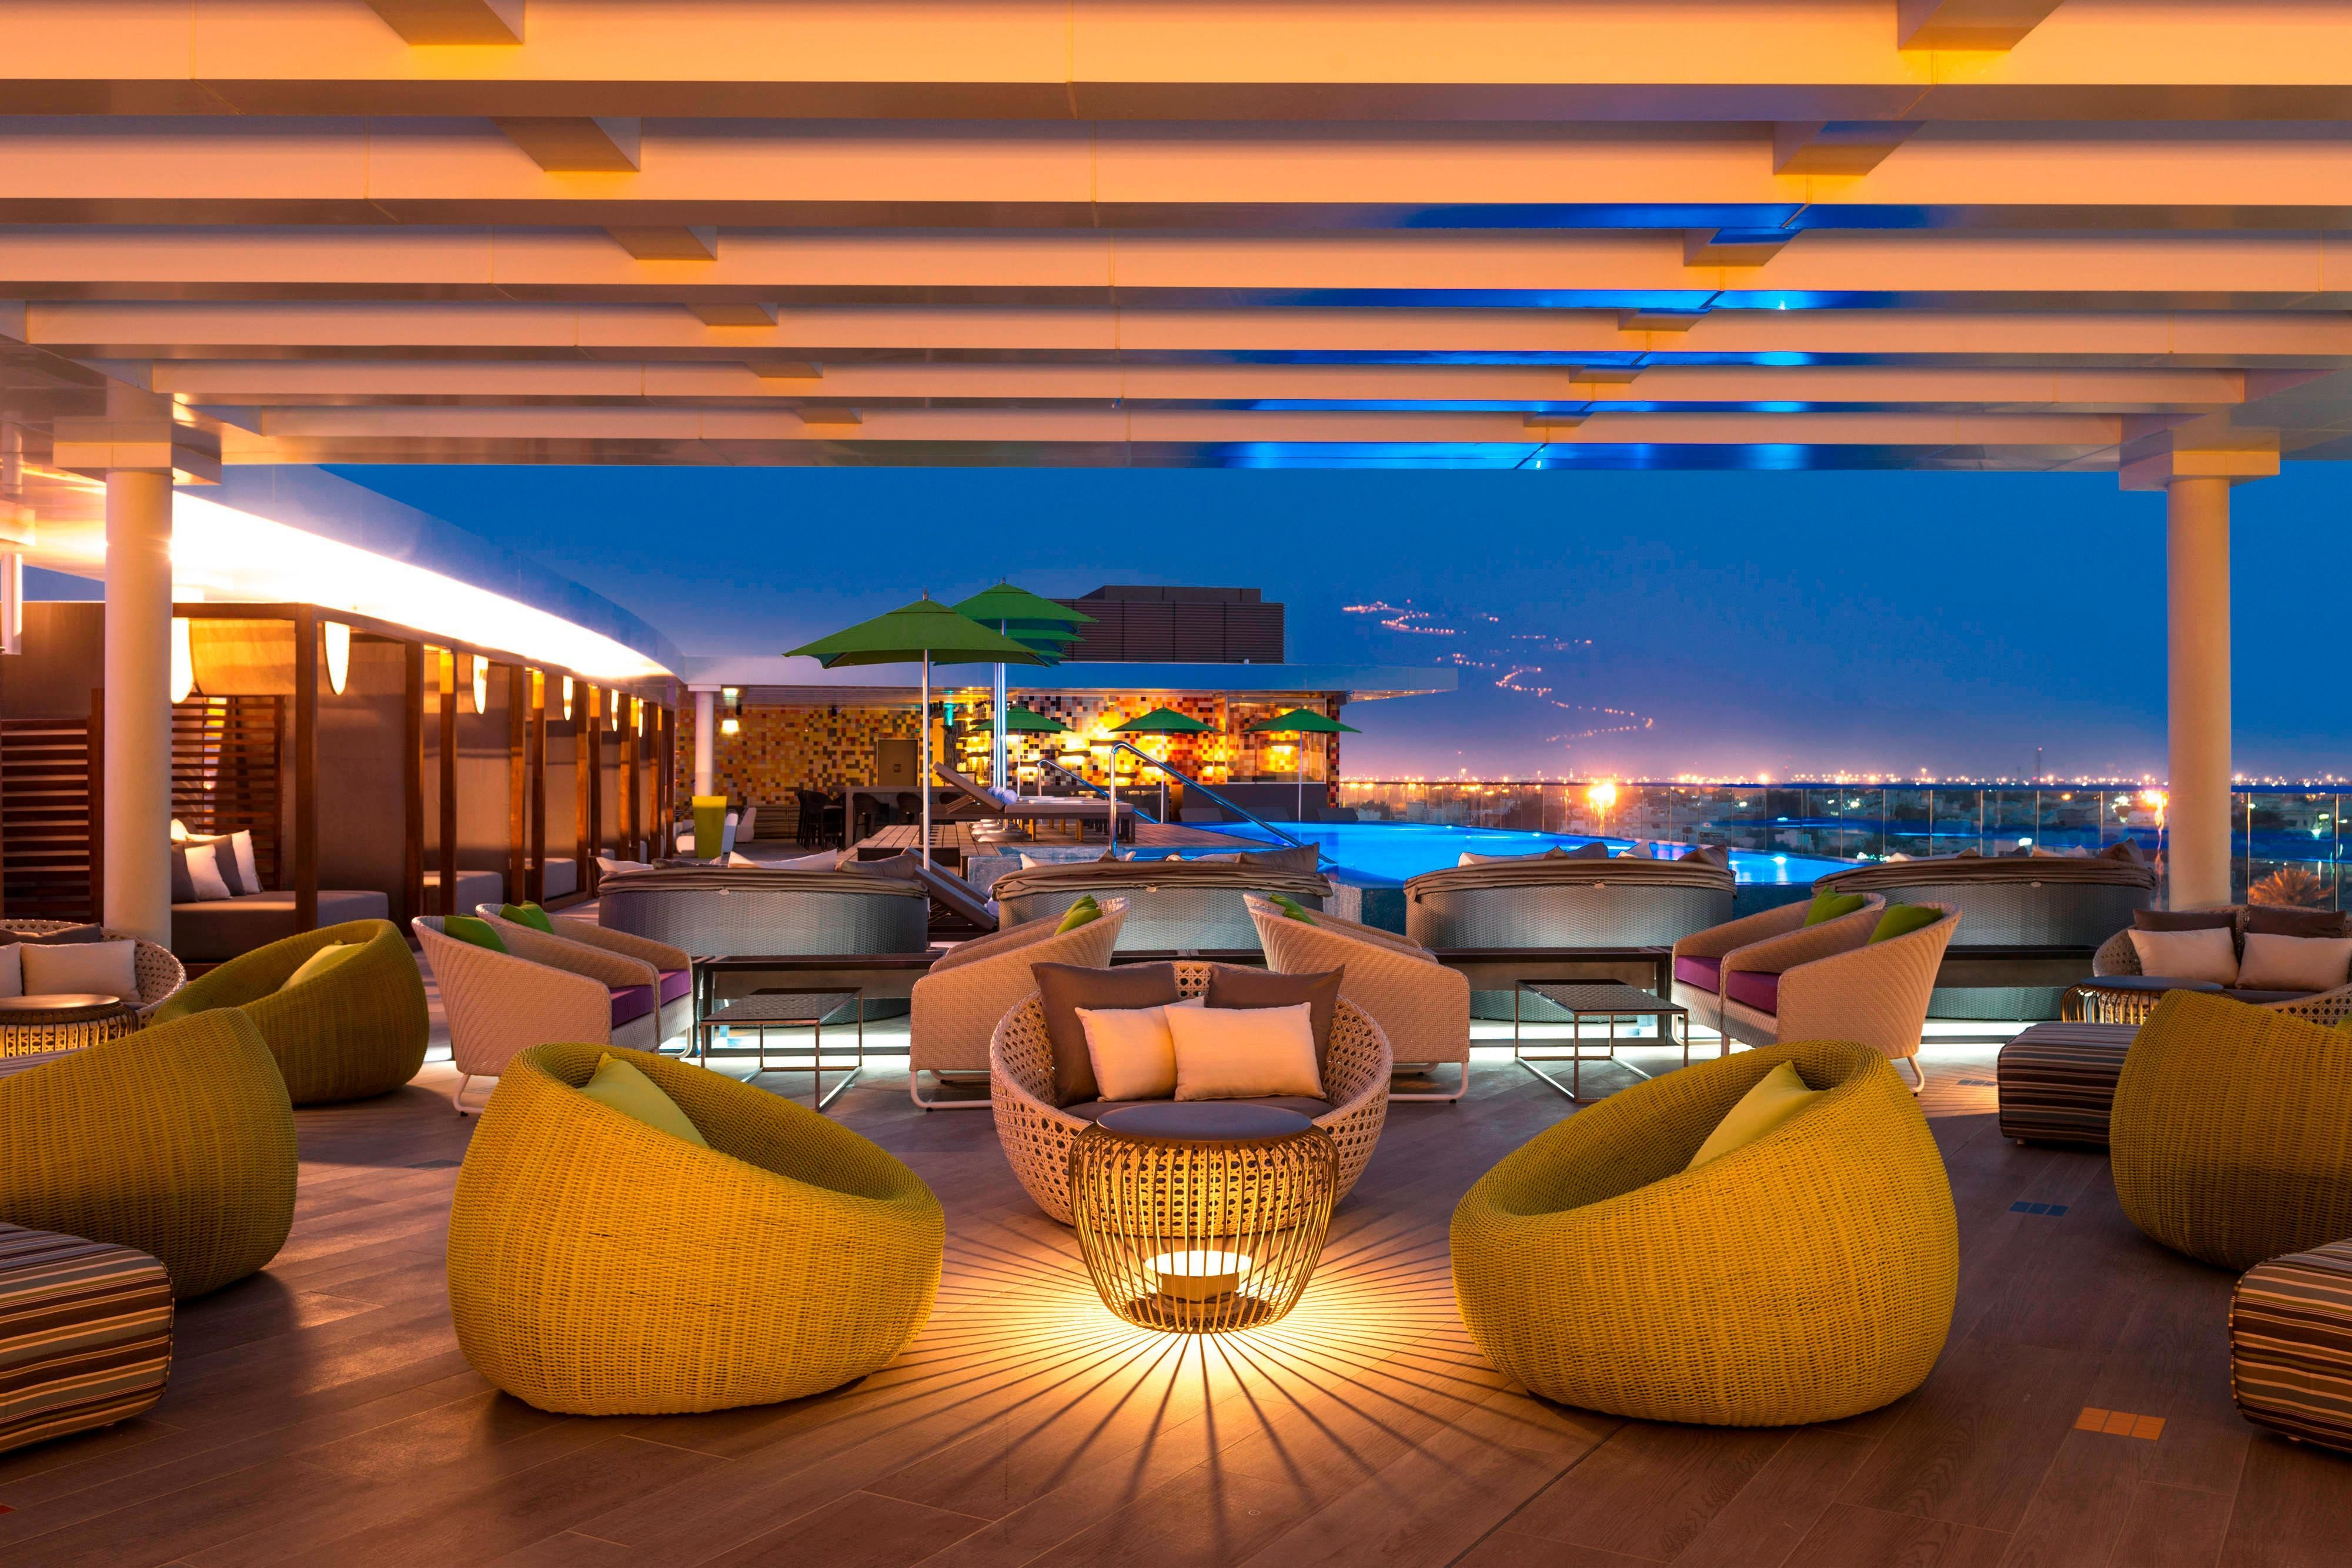 The Rooftop Lounge - Exterior